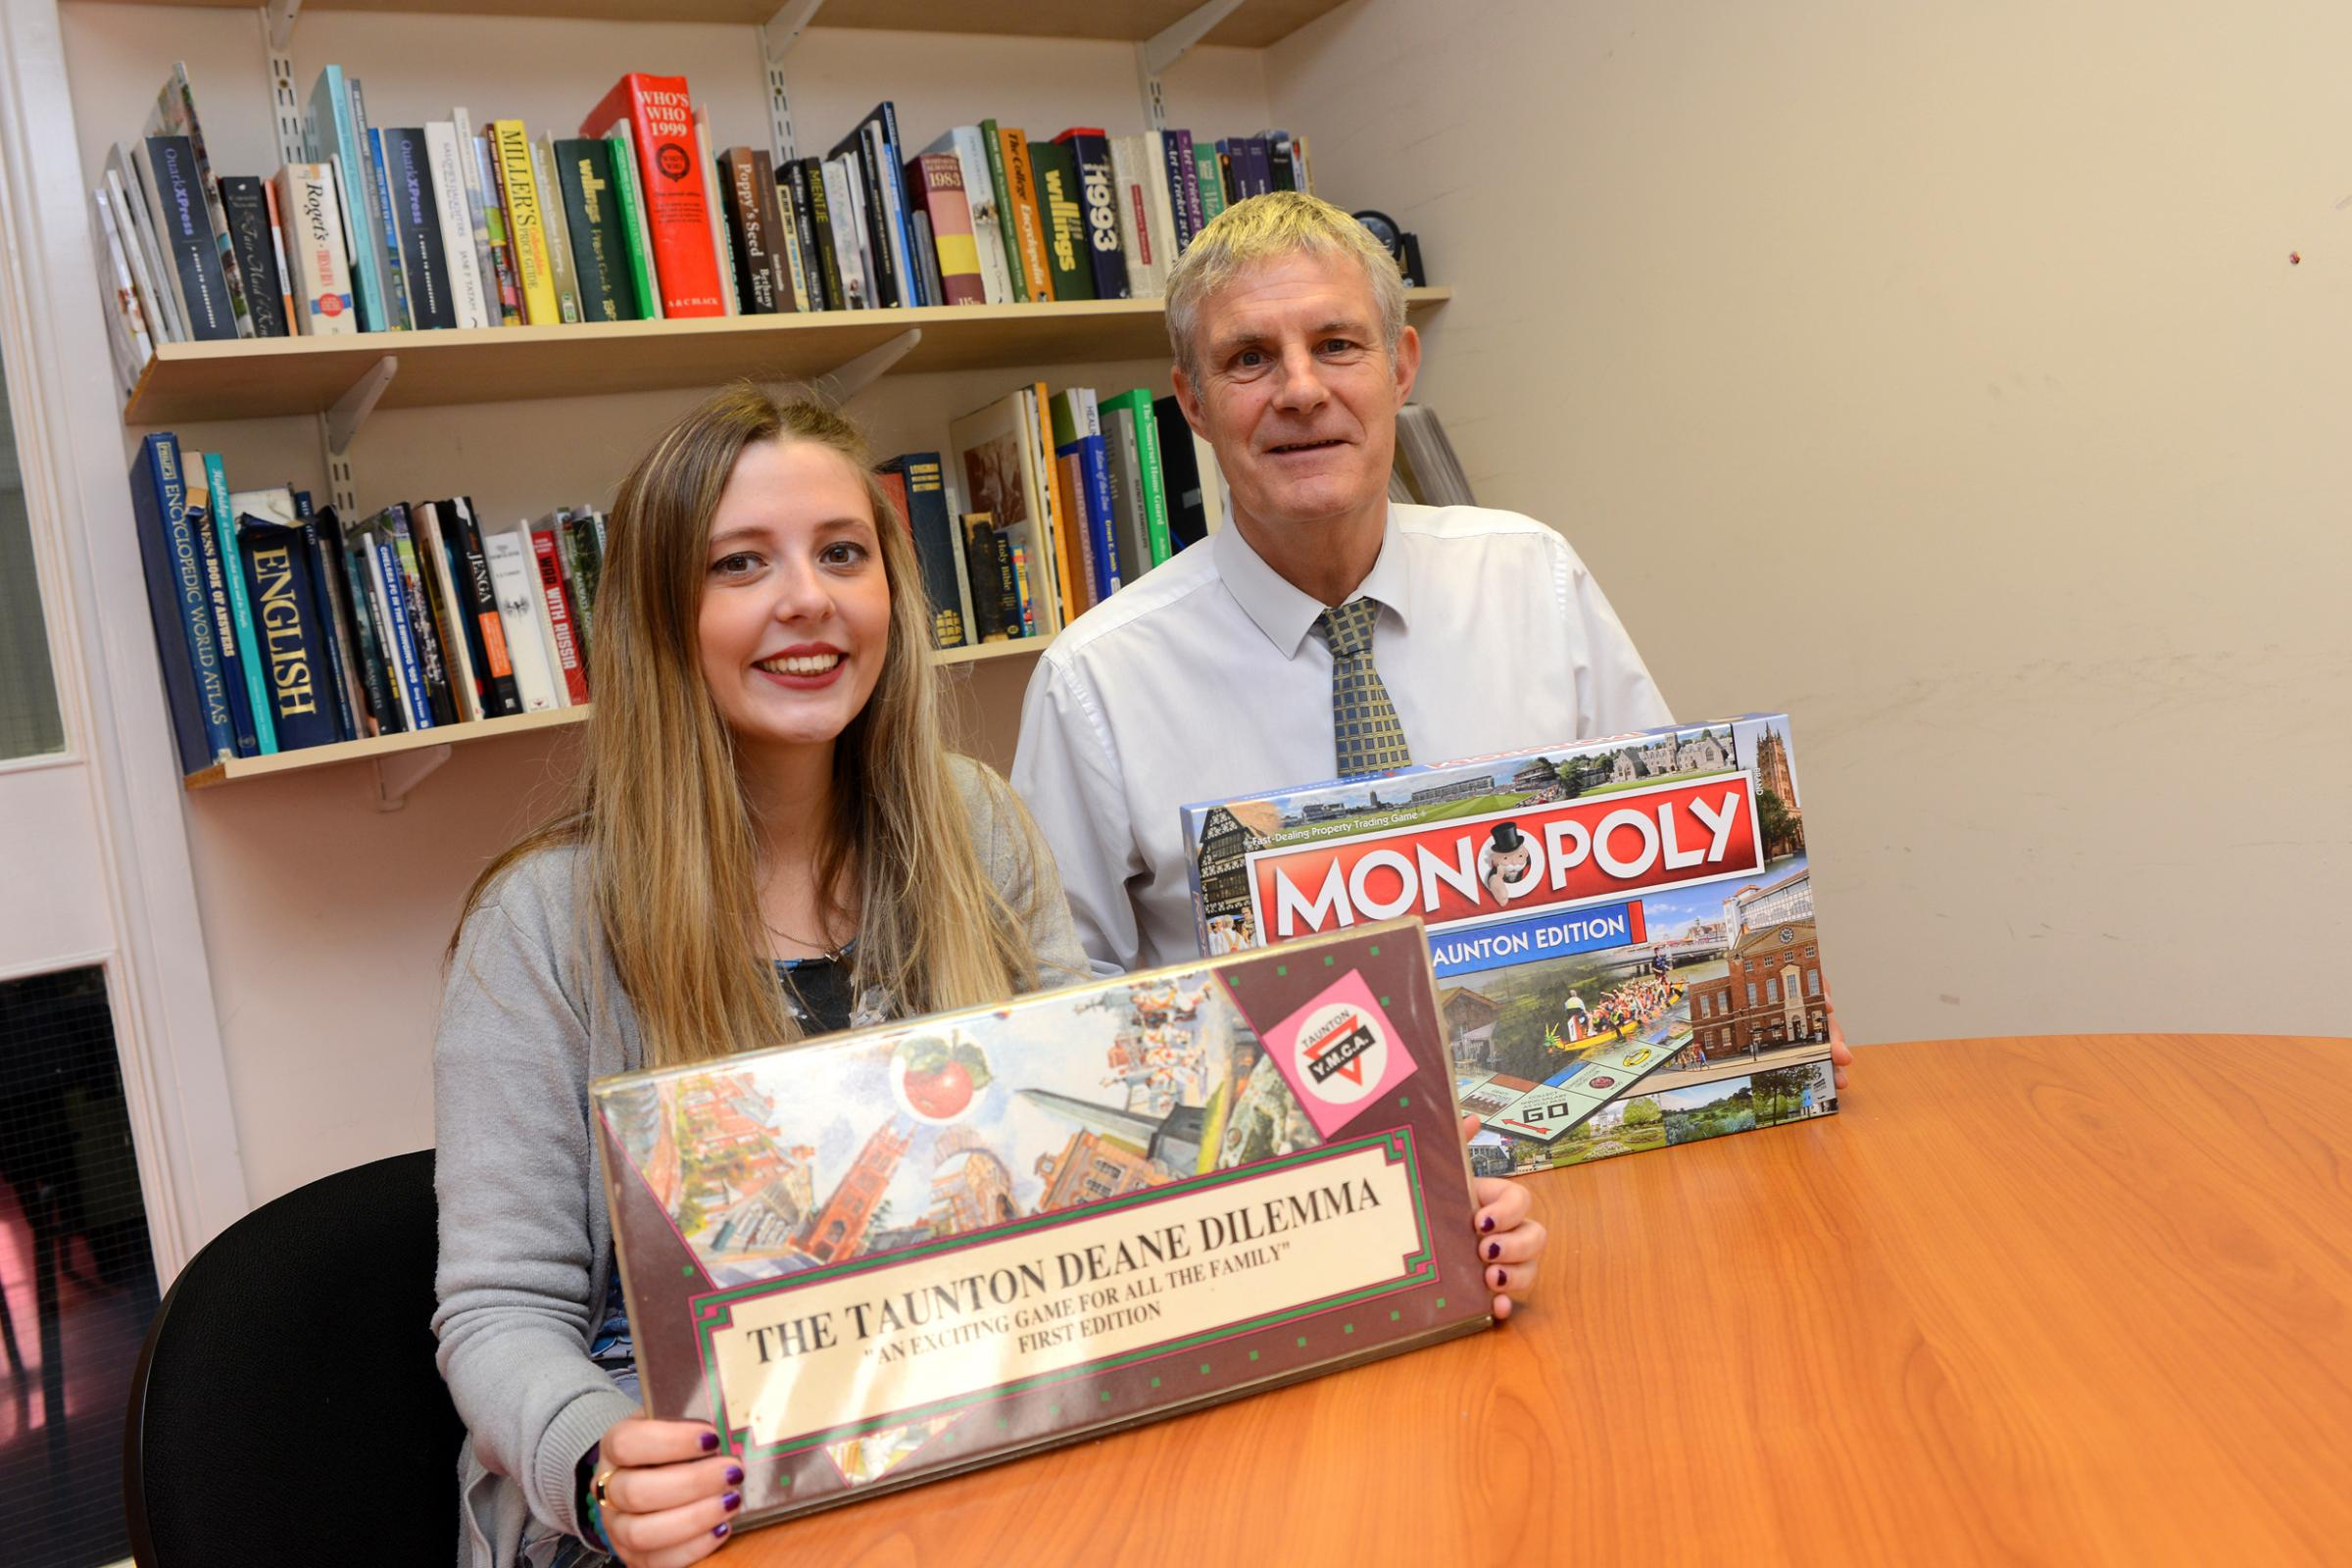 FUN AND GAMES: Reporters Amy Cole and Phil Hill with the Taunton Deane Dilemma and Monopoly games